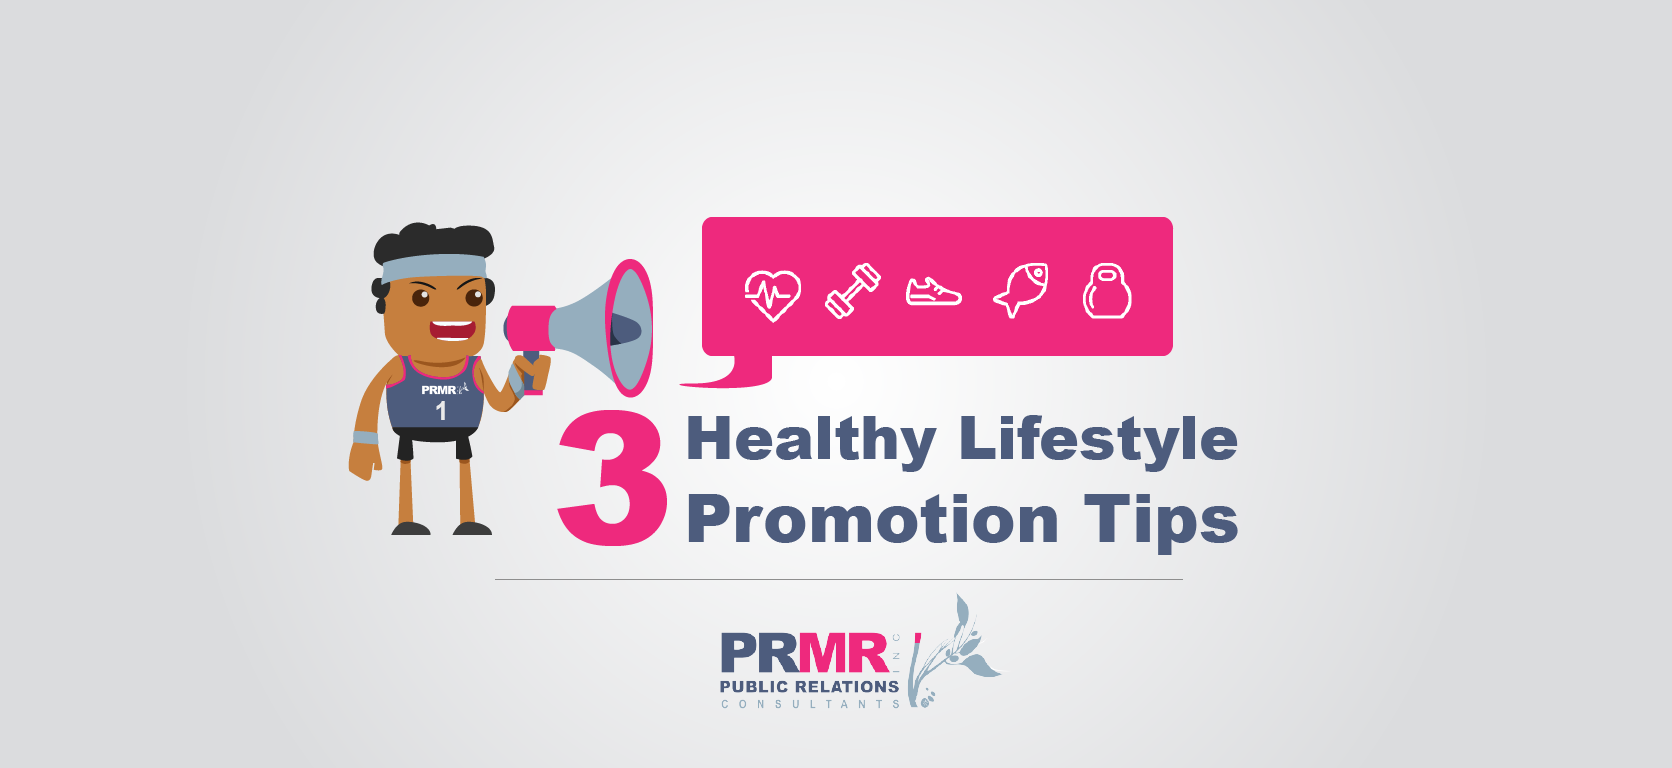 Three Healthy Lifestyle tips, PRMR Inc. Barbados & Caribbean Public Relations Company.